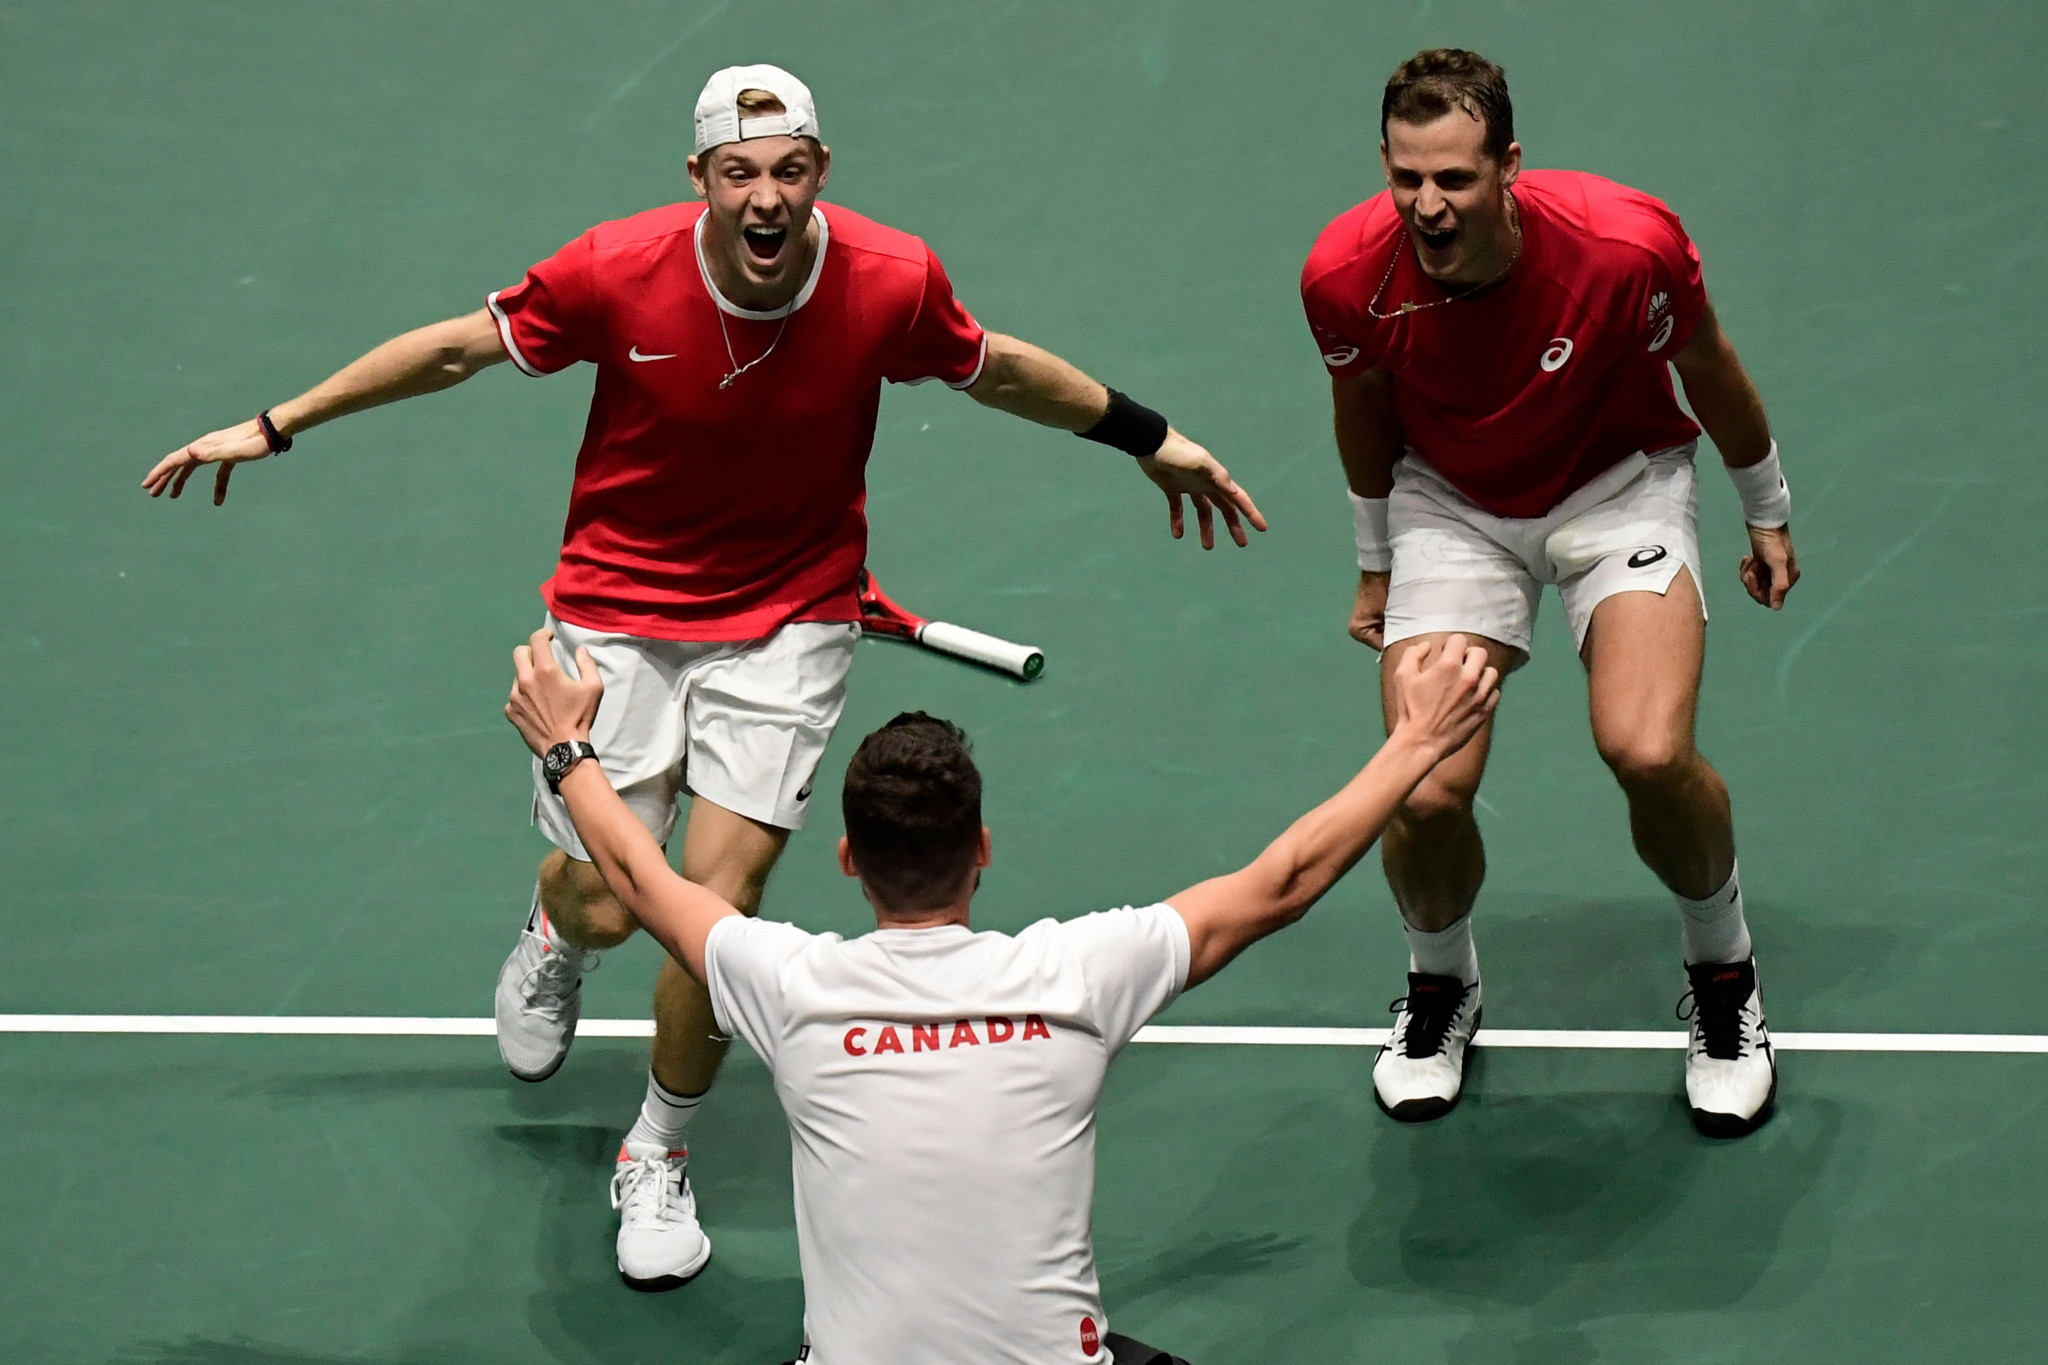 Canada clinch place in last four at Davis Cup Finals